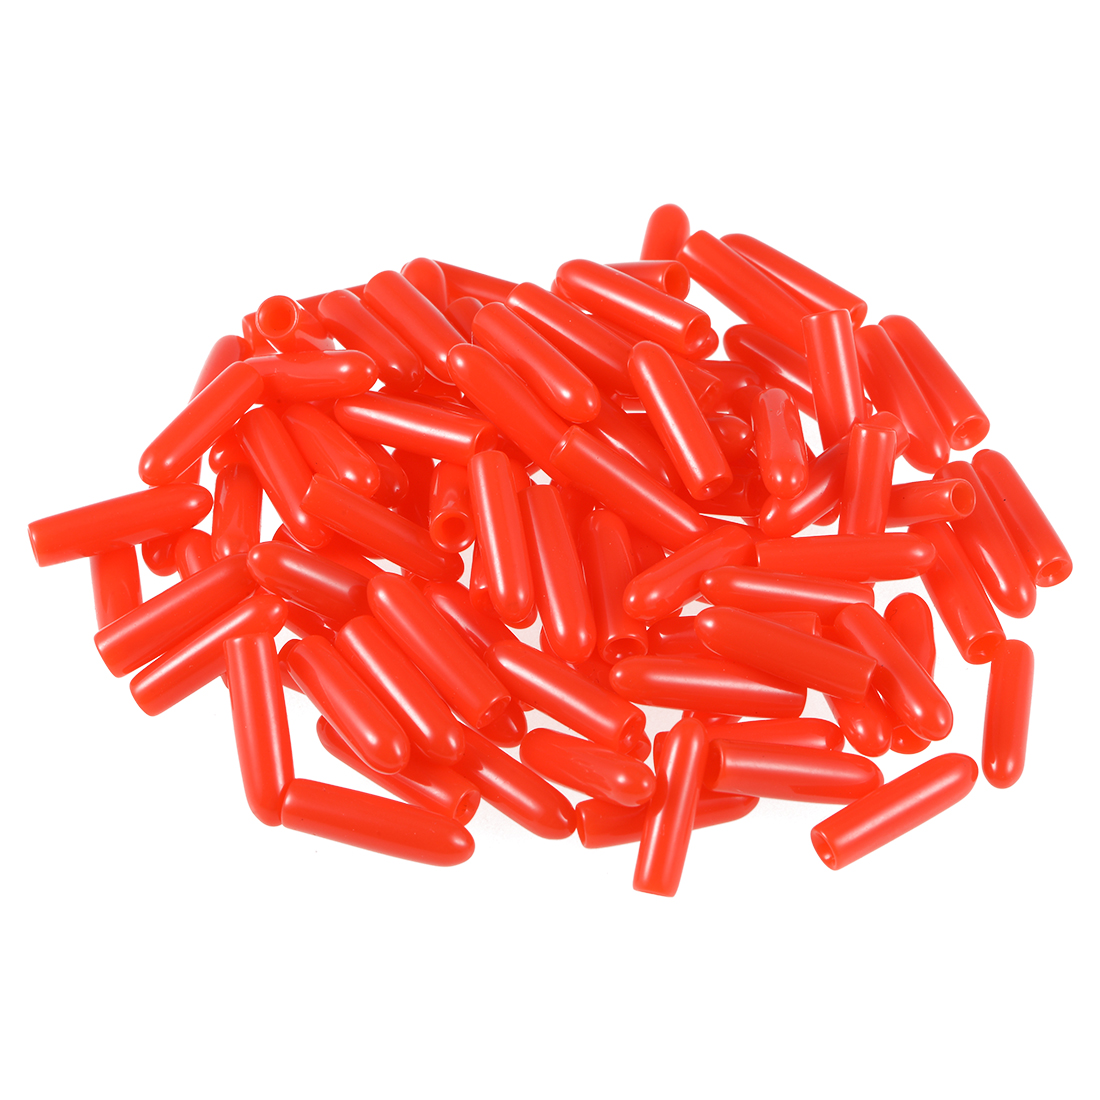 Screw Thread Protectors, 2mm ID 14.5mm Length Round End Cap Cover Red 100pcs